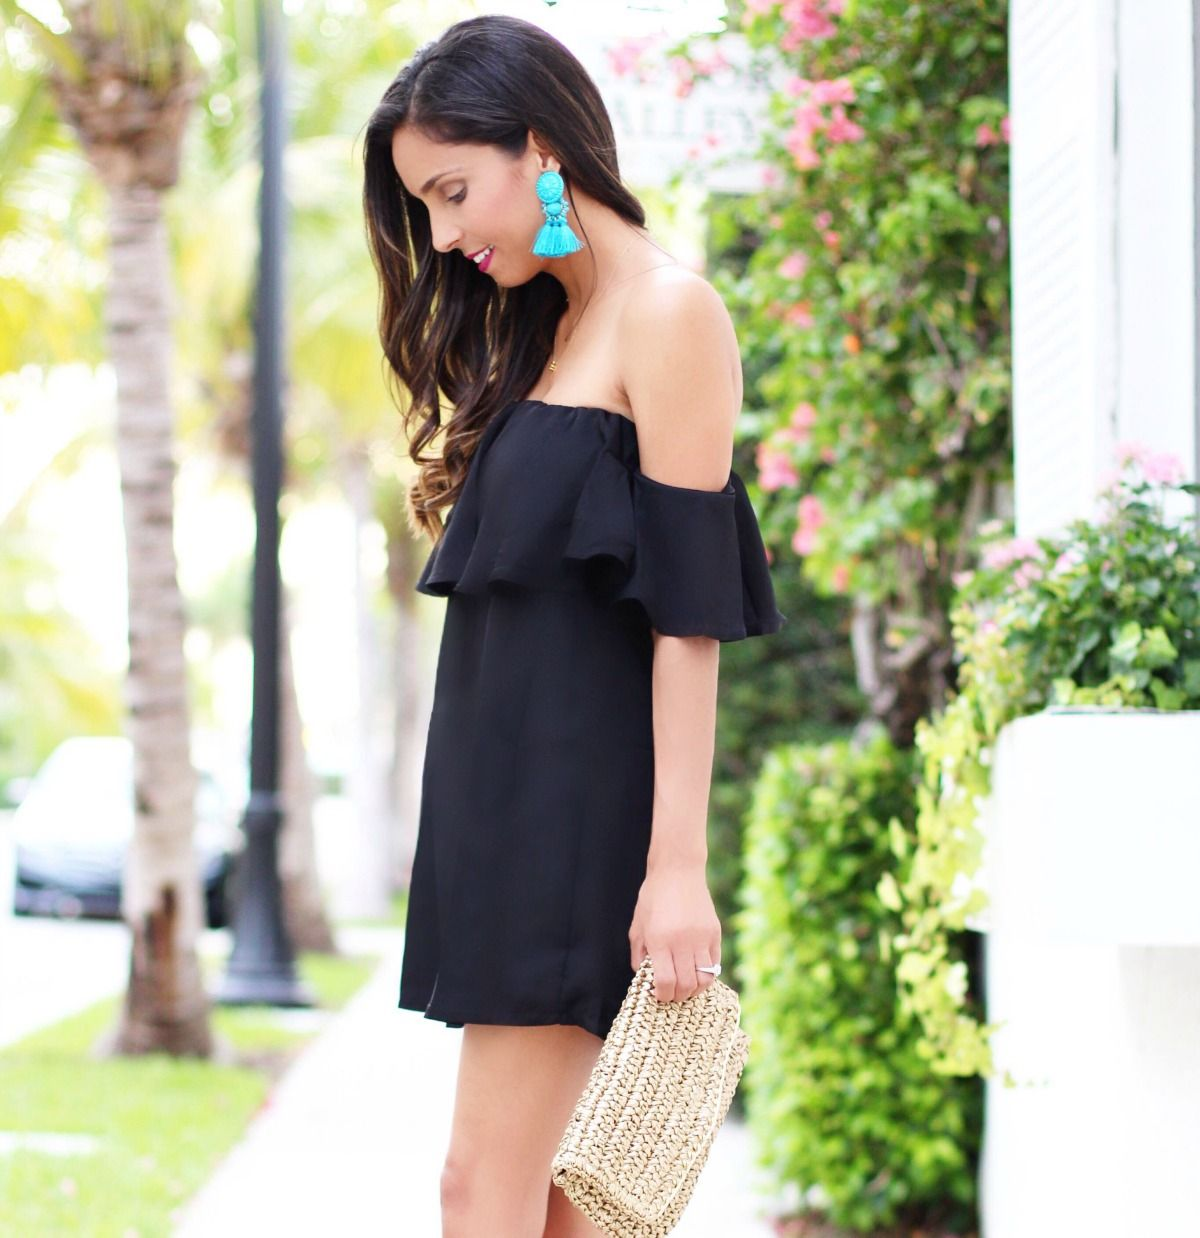 Off The Black Dress With Turquoise Tel Earrings